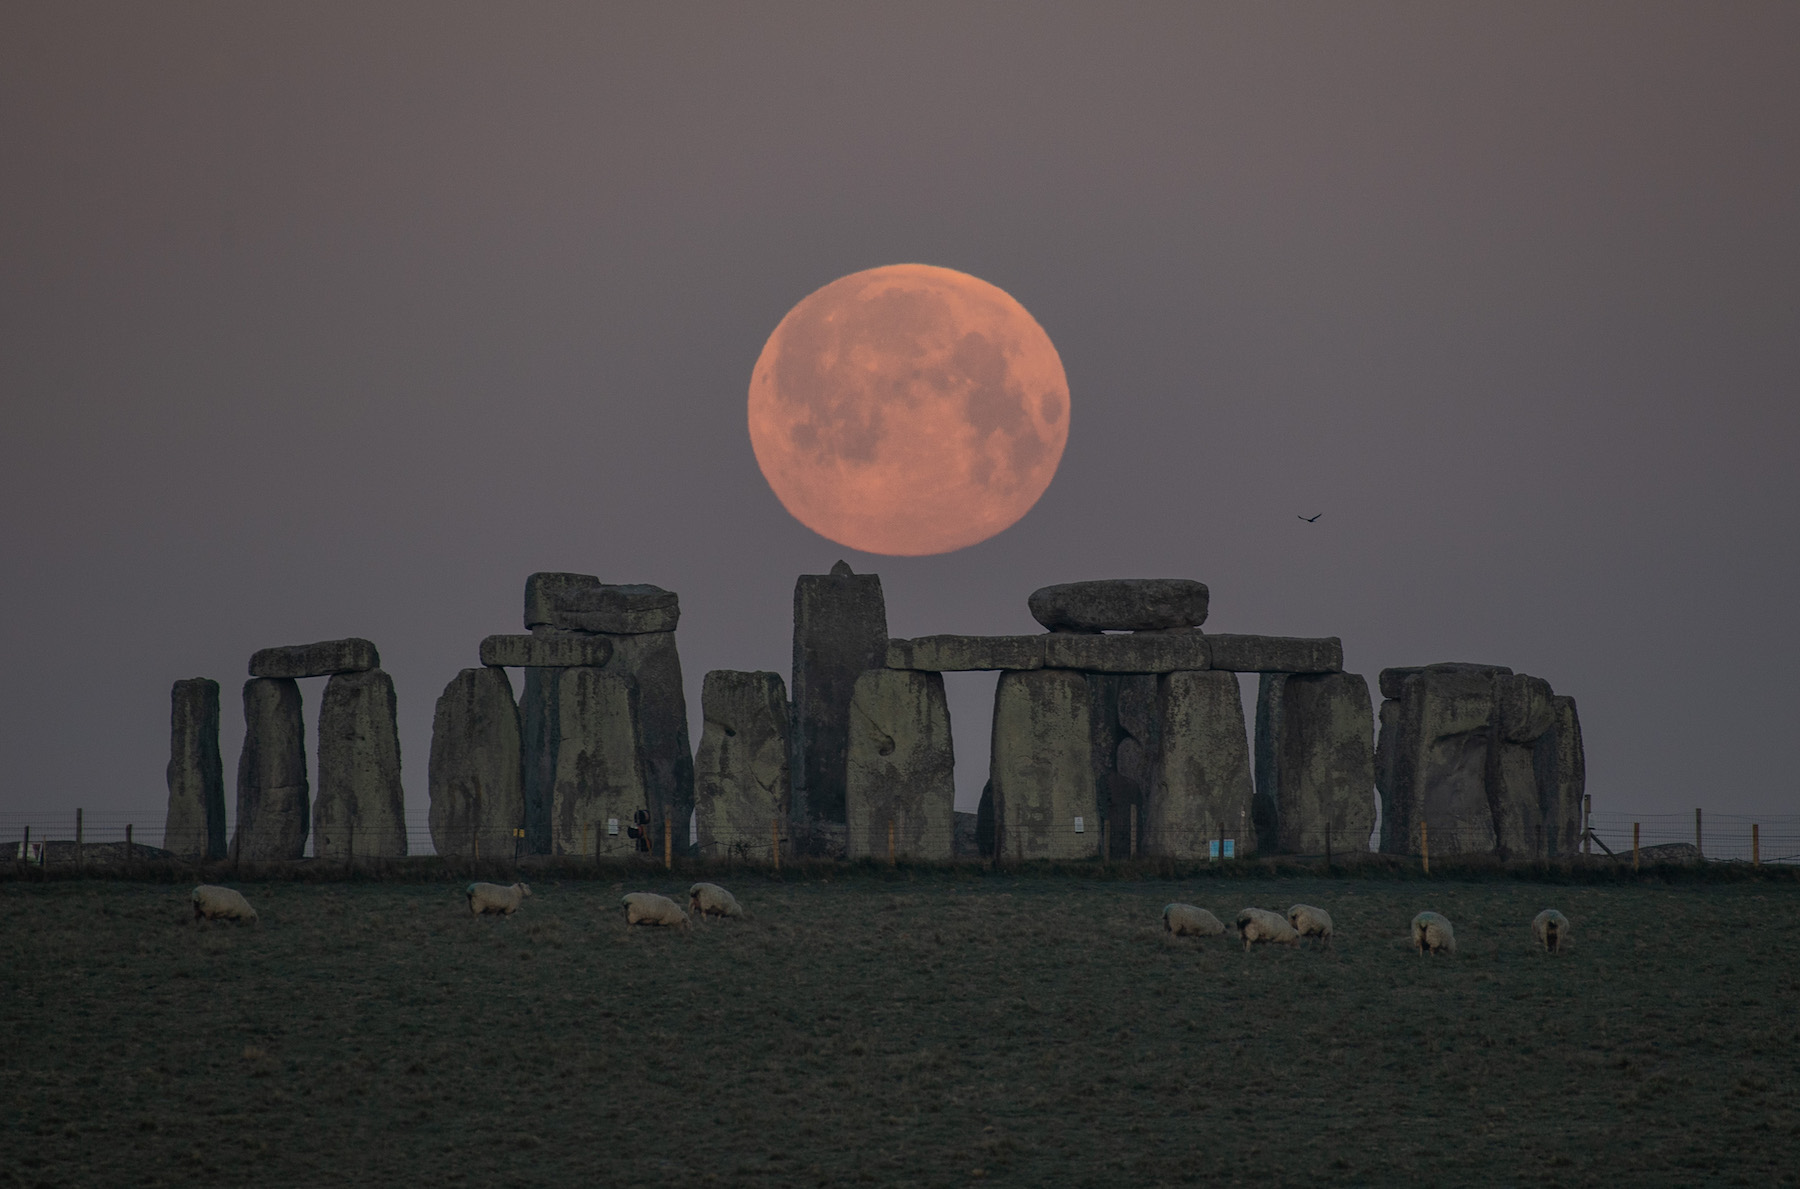 Scientists Have Conducted Tests That Reveal Stonehenge Is Made From a Nearly Indestructible Ancient Material | Artnet News